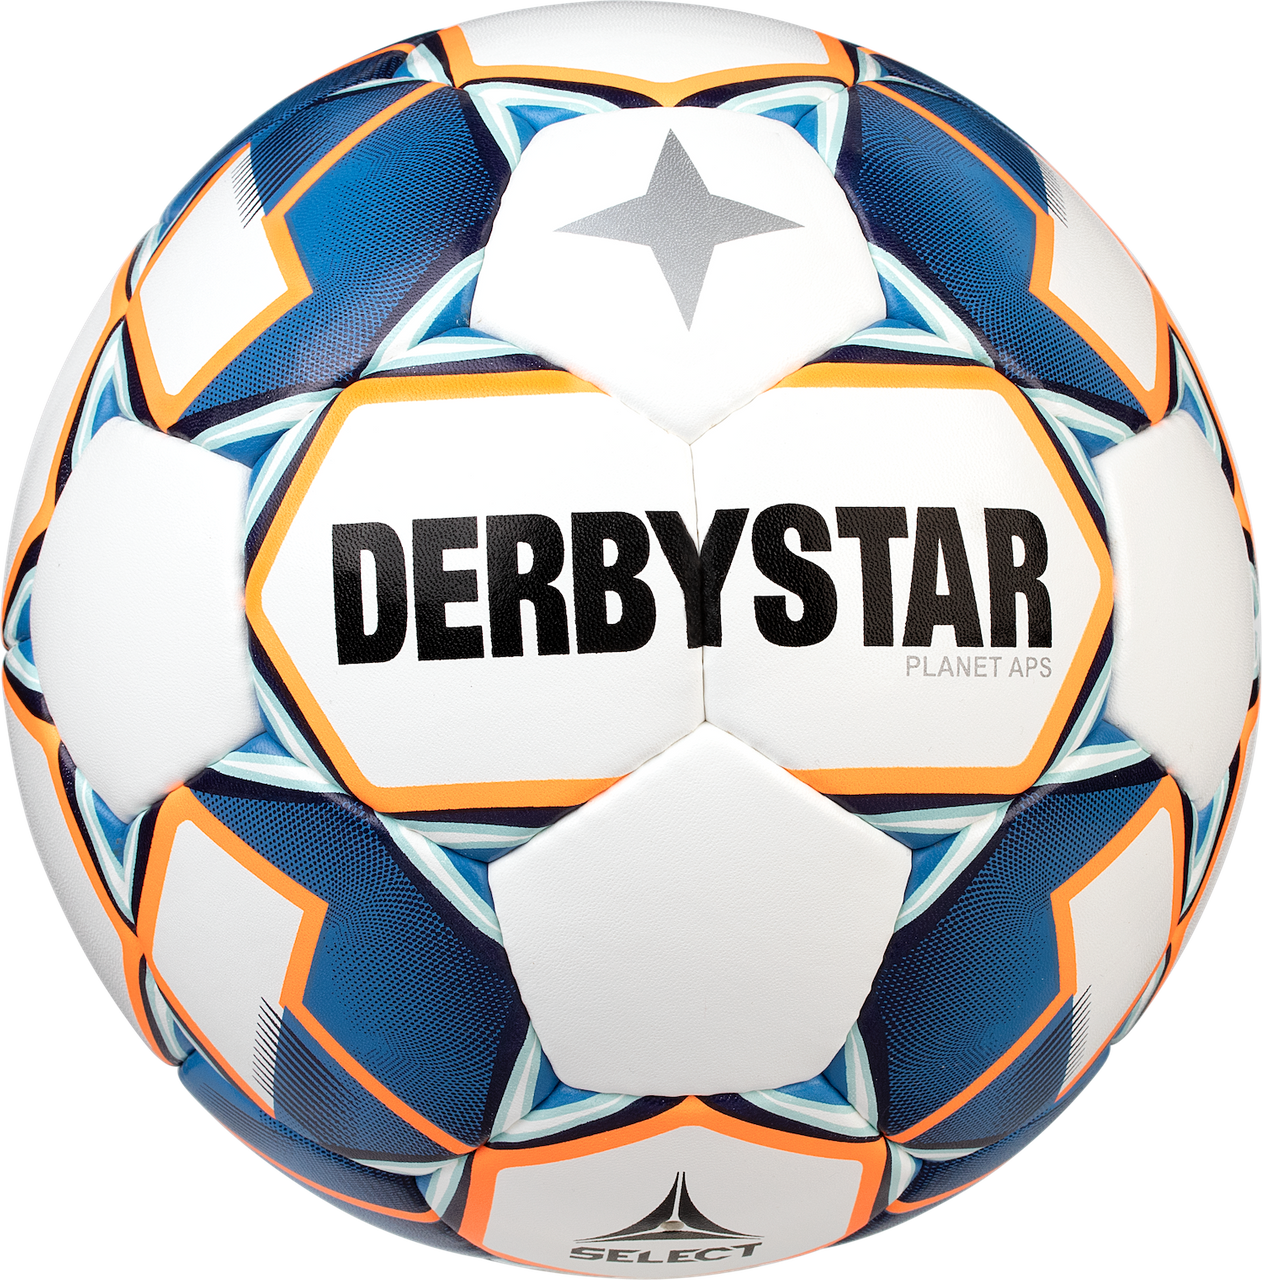 DERBYSTAR Match Ball - PLANET APS